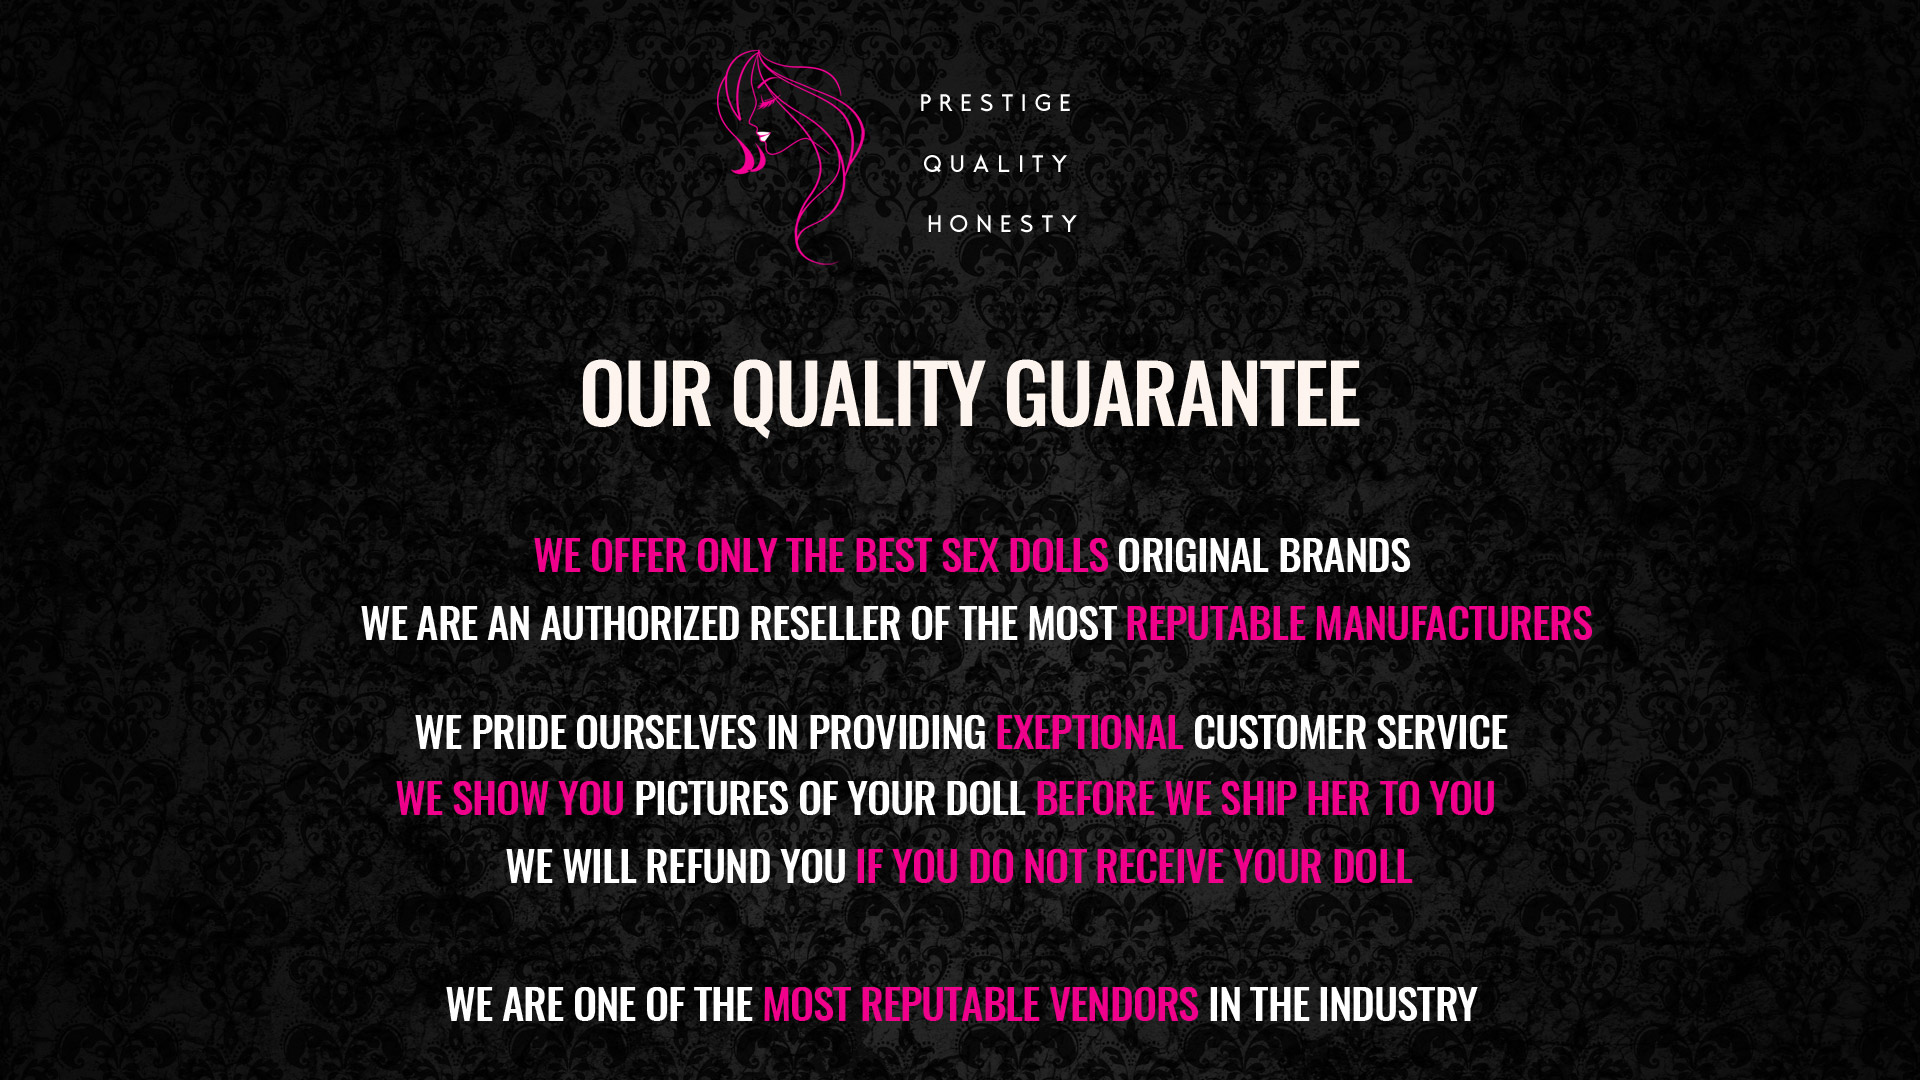 Our quality guarantee